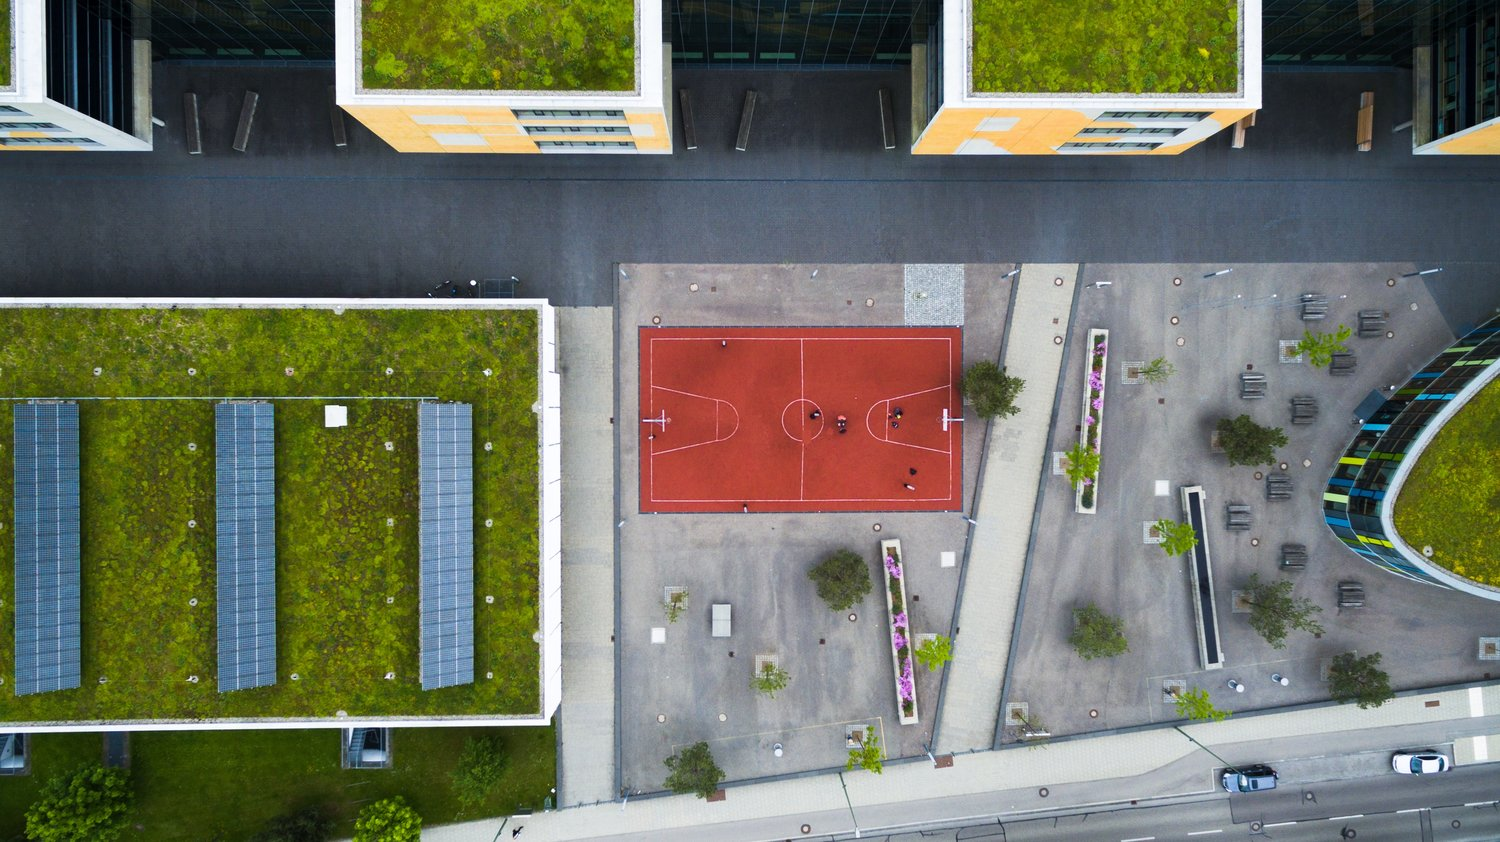 Making a Sustainable Impact with Rooftop Gardens